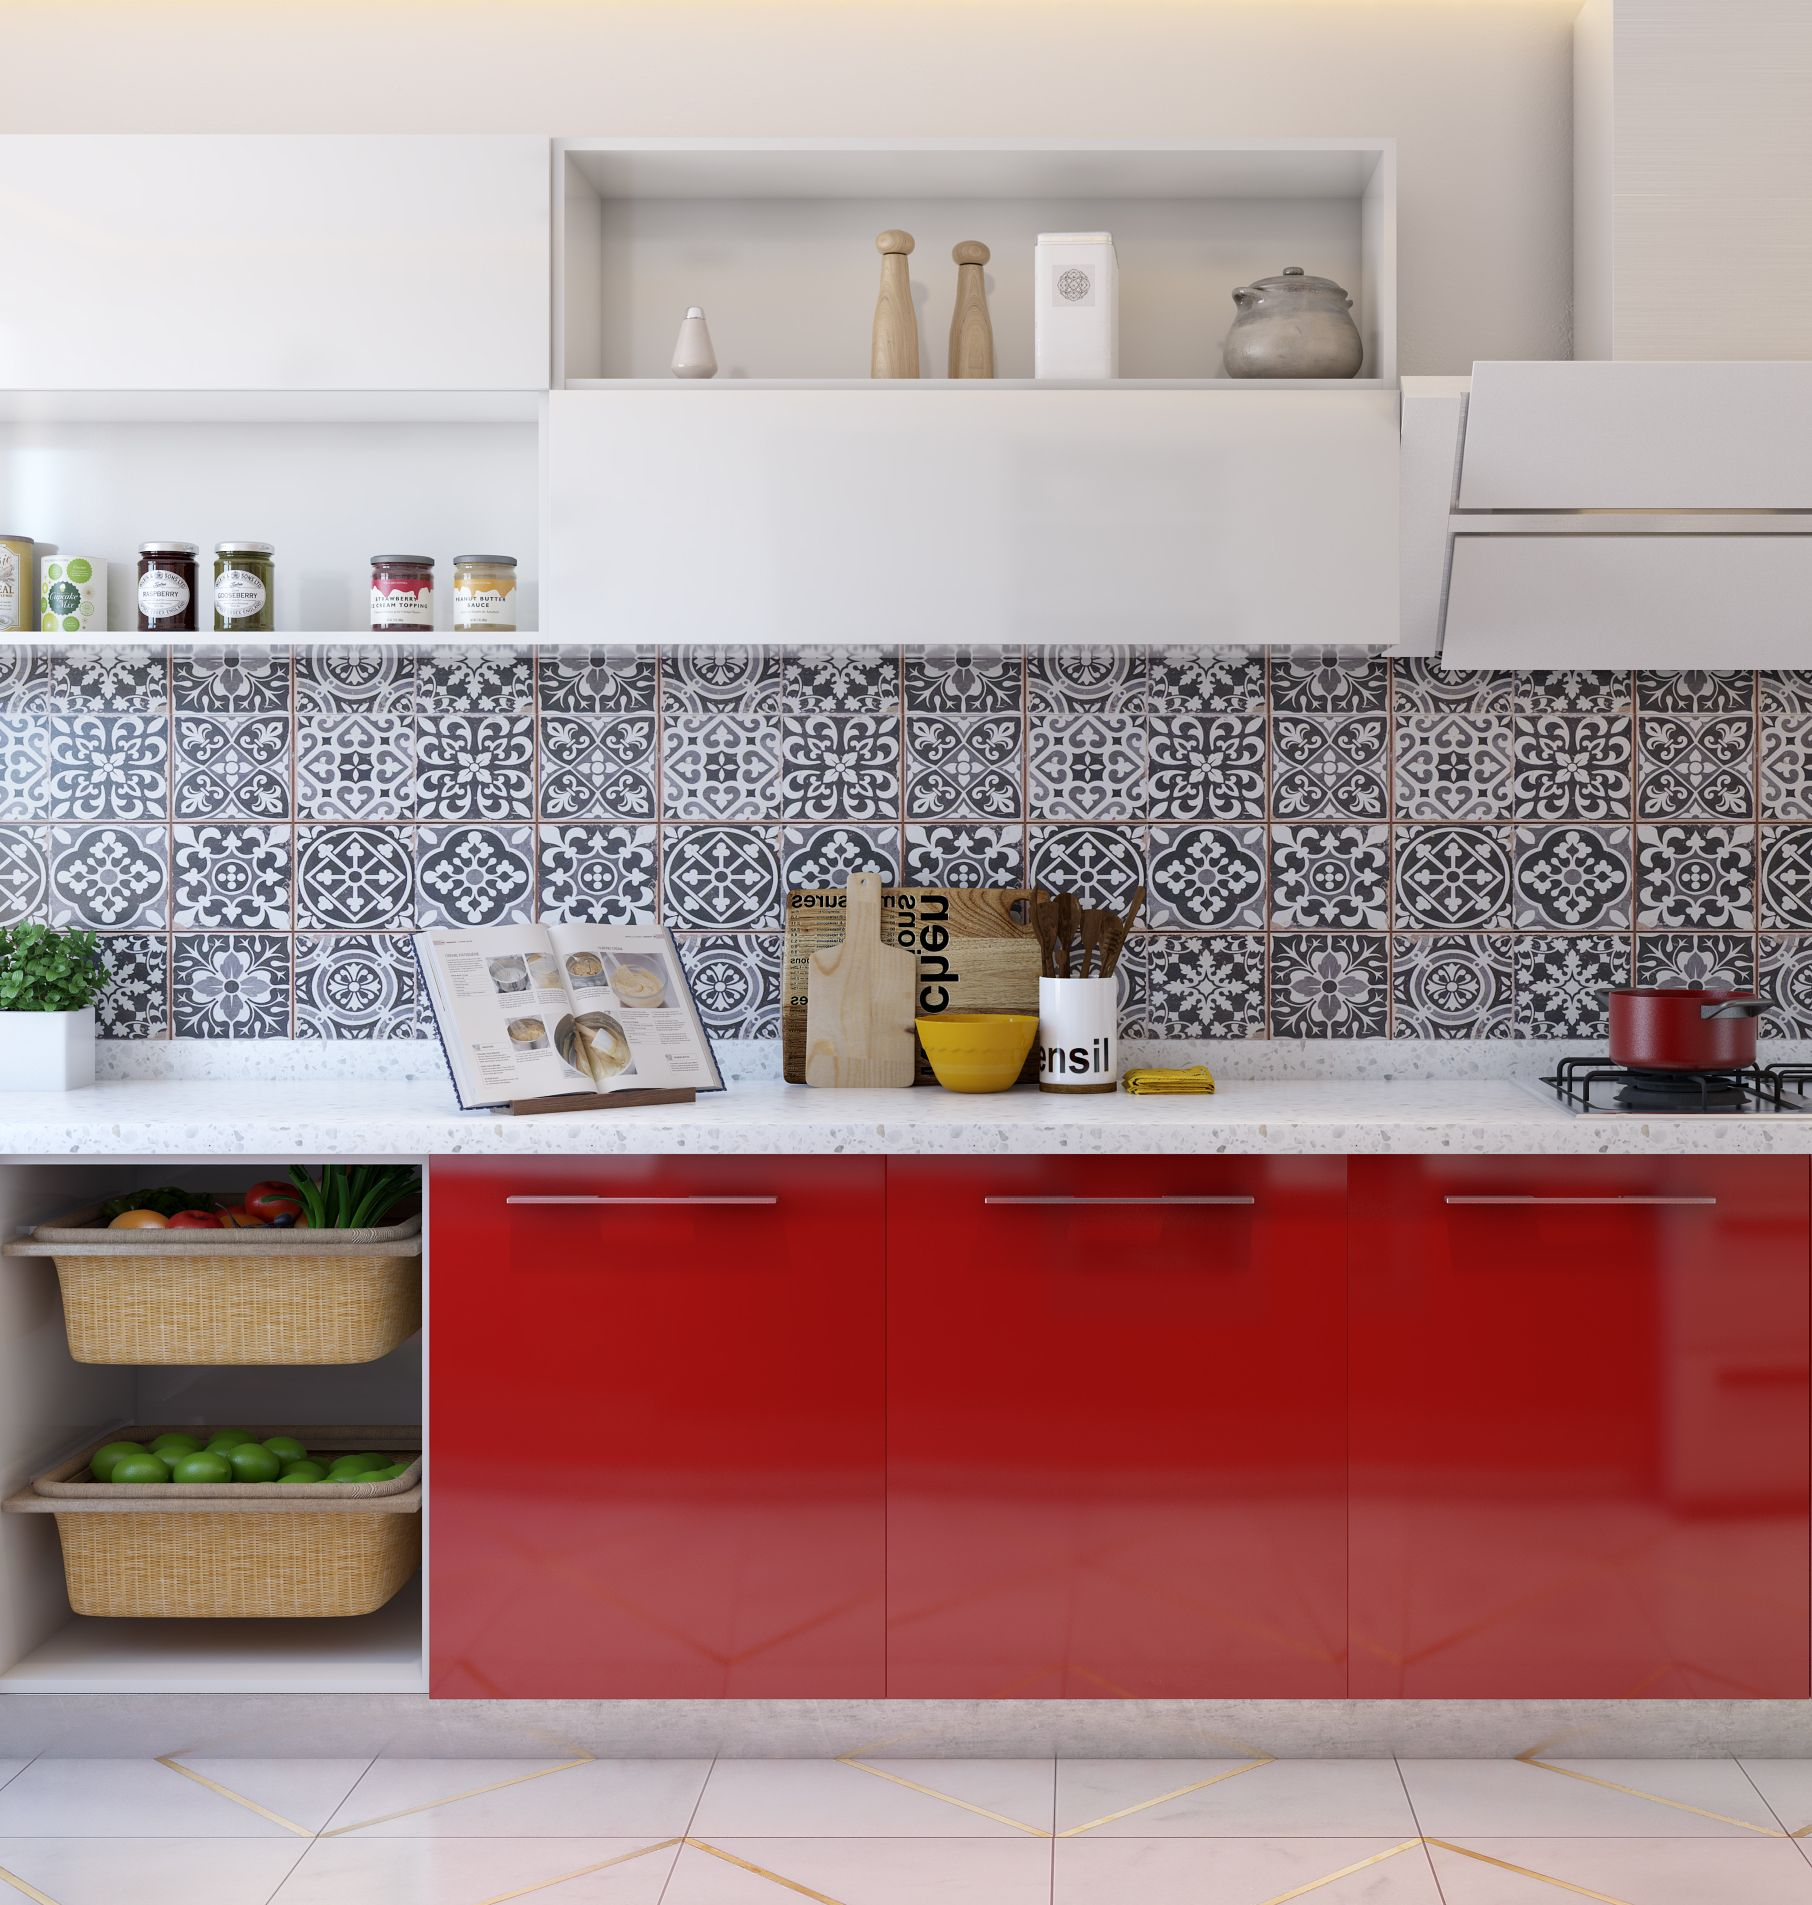 We just can't get enough of patterned tiles as backsplashes Isn't ...